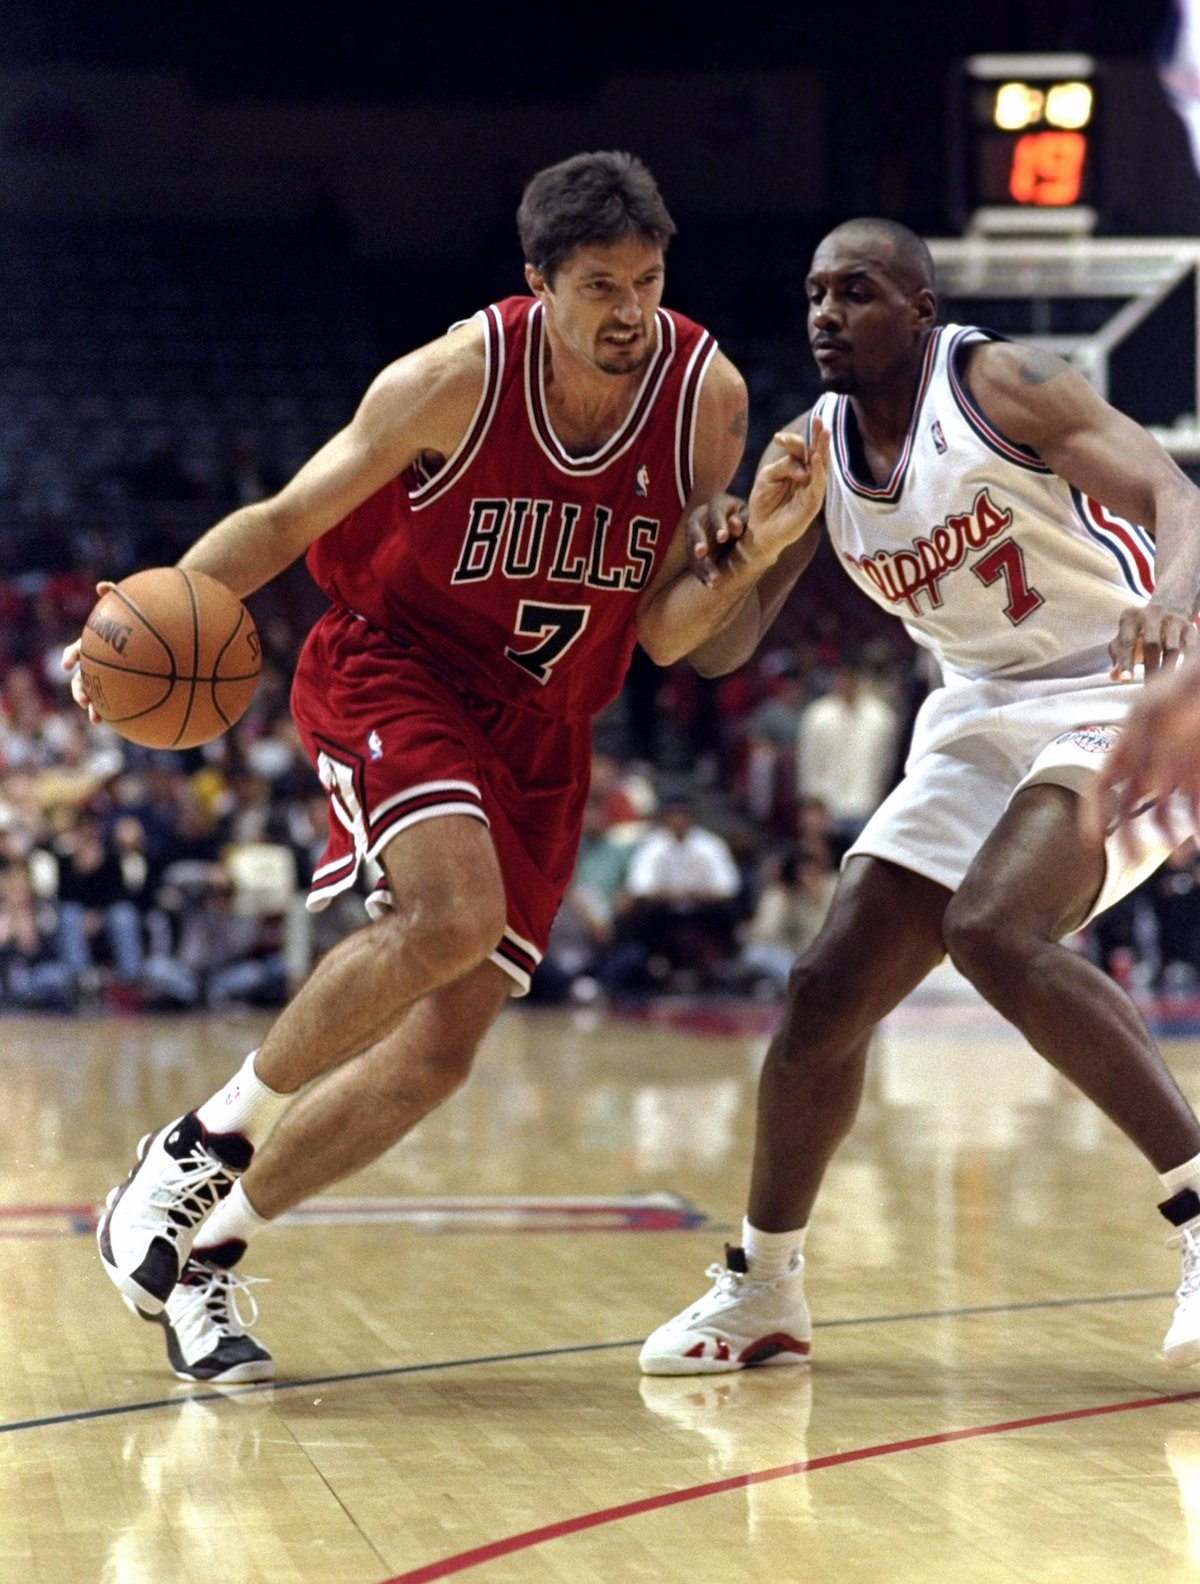 1999 – Toni Kukoc drives in against the Los Angeles Clippers